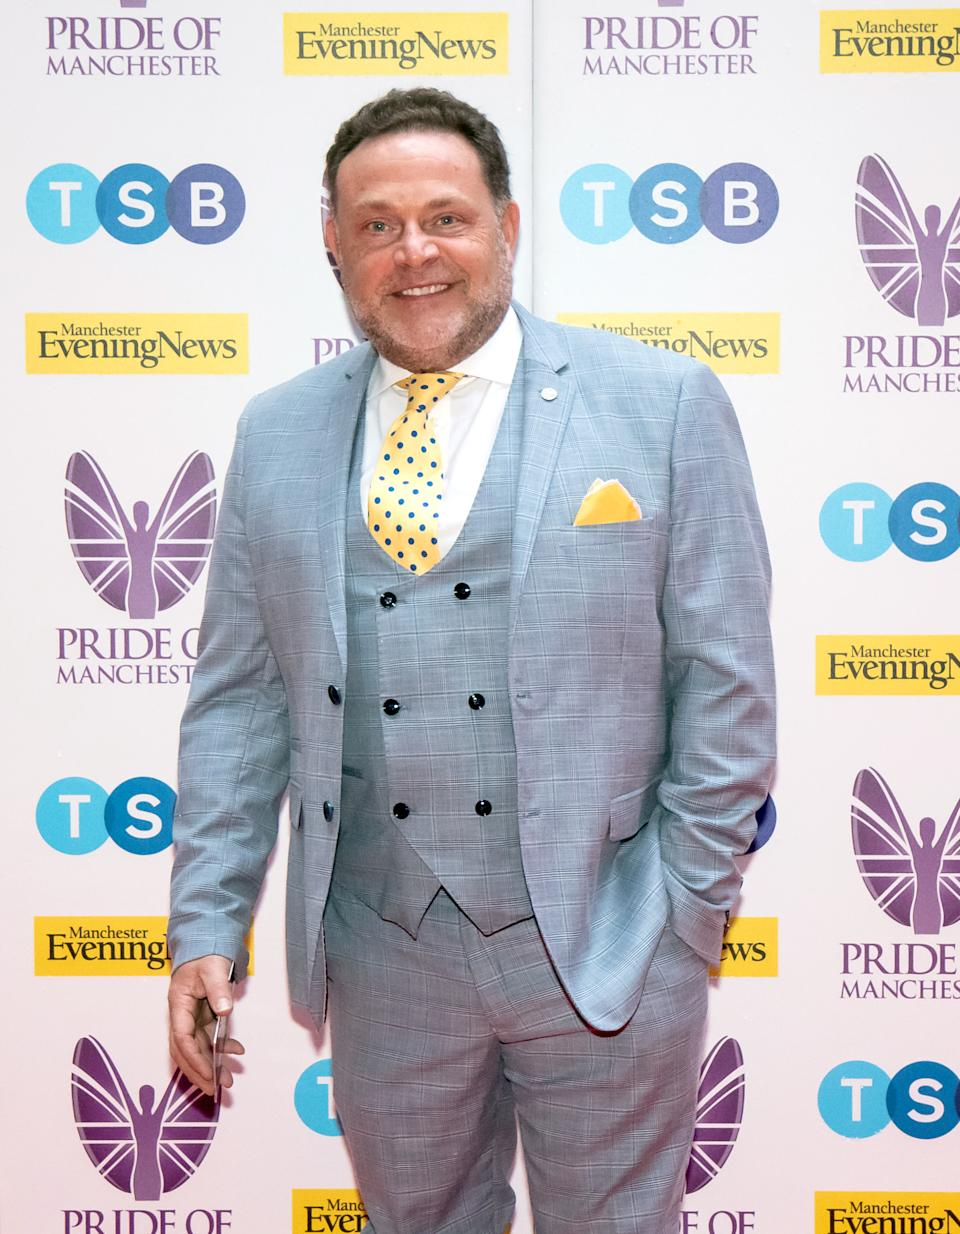 MANCHESTER, ENGLAND - MAY 08: John Thomson attends the Pride of Manchester Awards 2019 at Waterhouse Way on May 08, 2019 in Manchester, England. (Photo by Carla Speight/Getty Images)